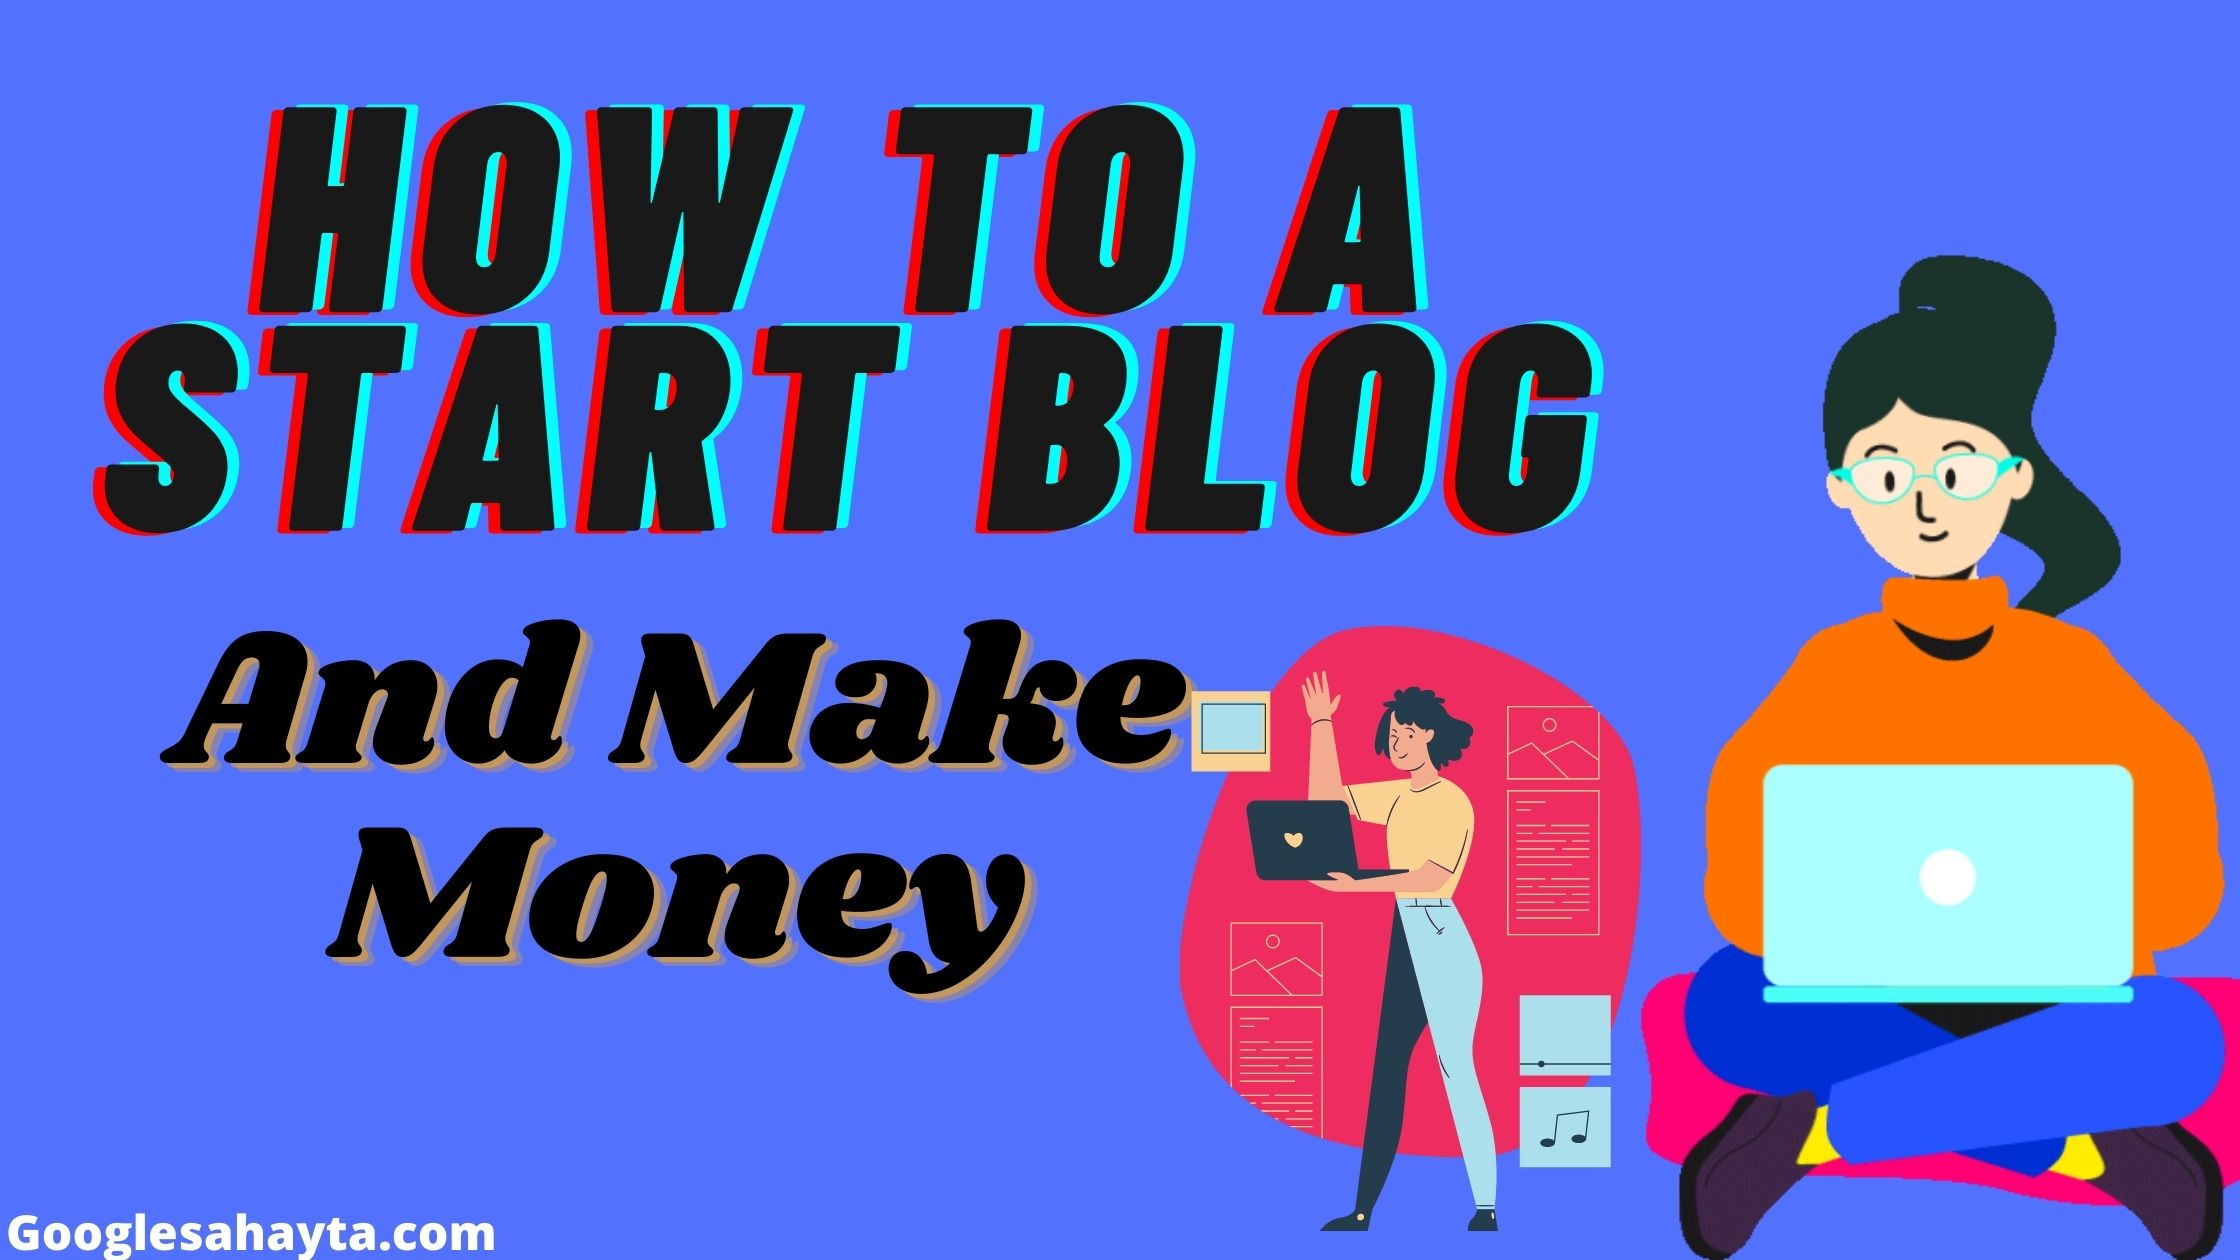 How To Start Blog